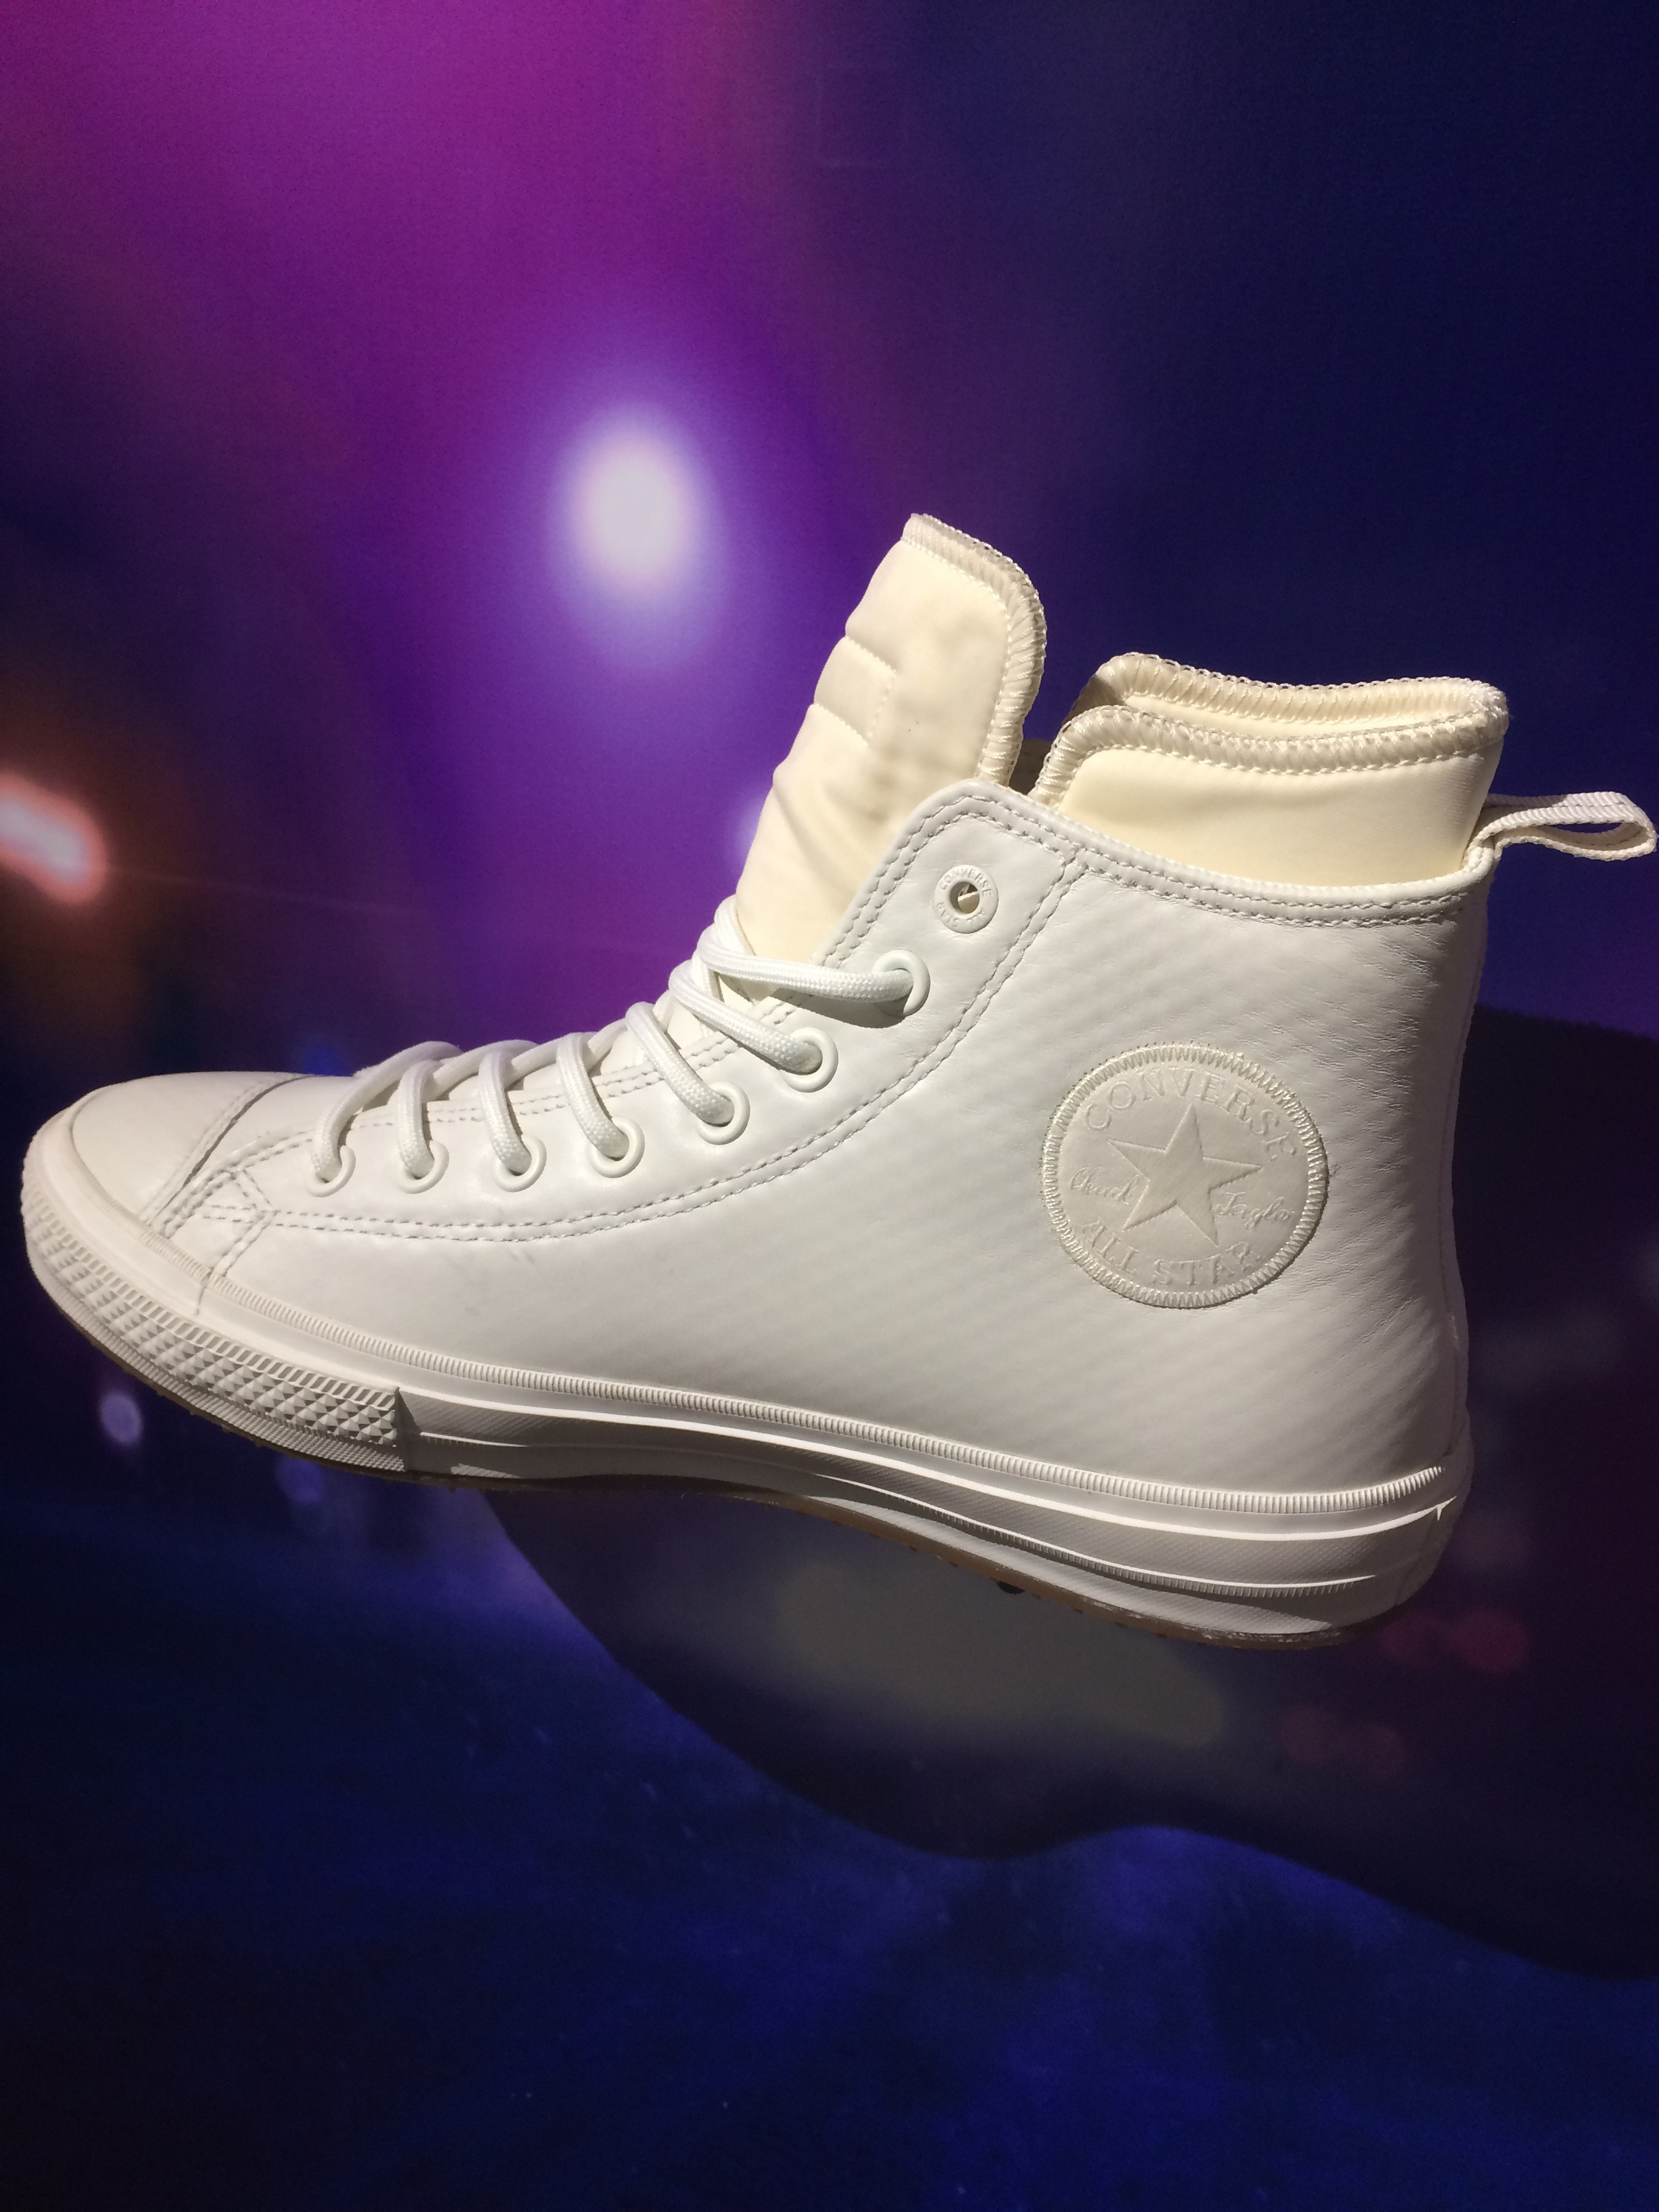 d03a4f446515 Chuck Taylor All Star II Boot - Egret - TheSceneInTO